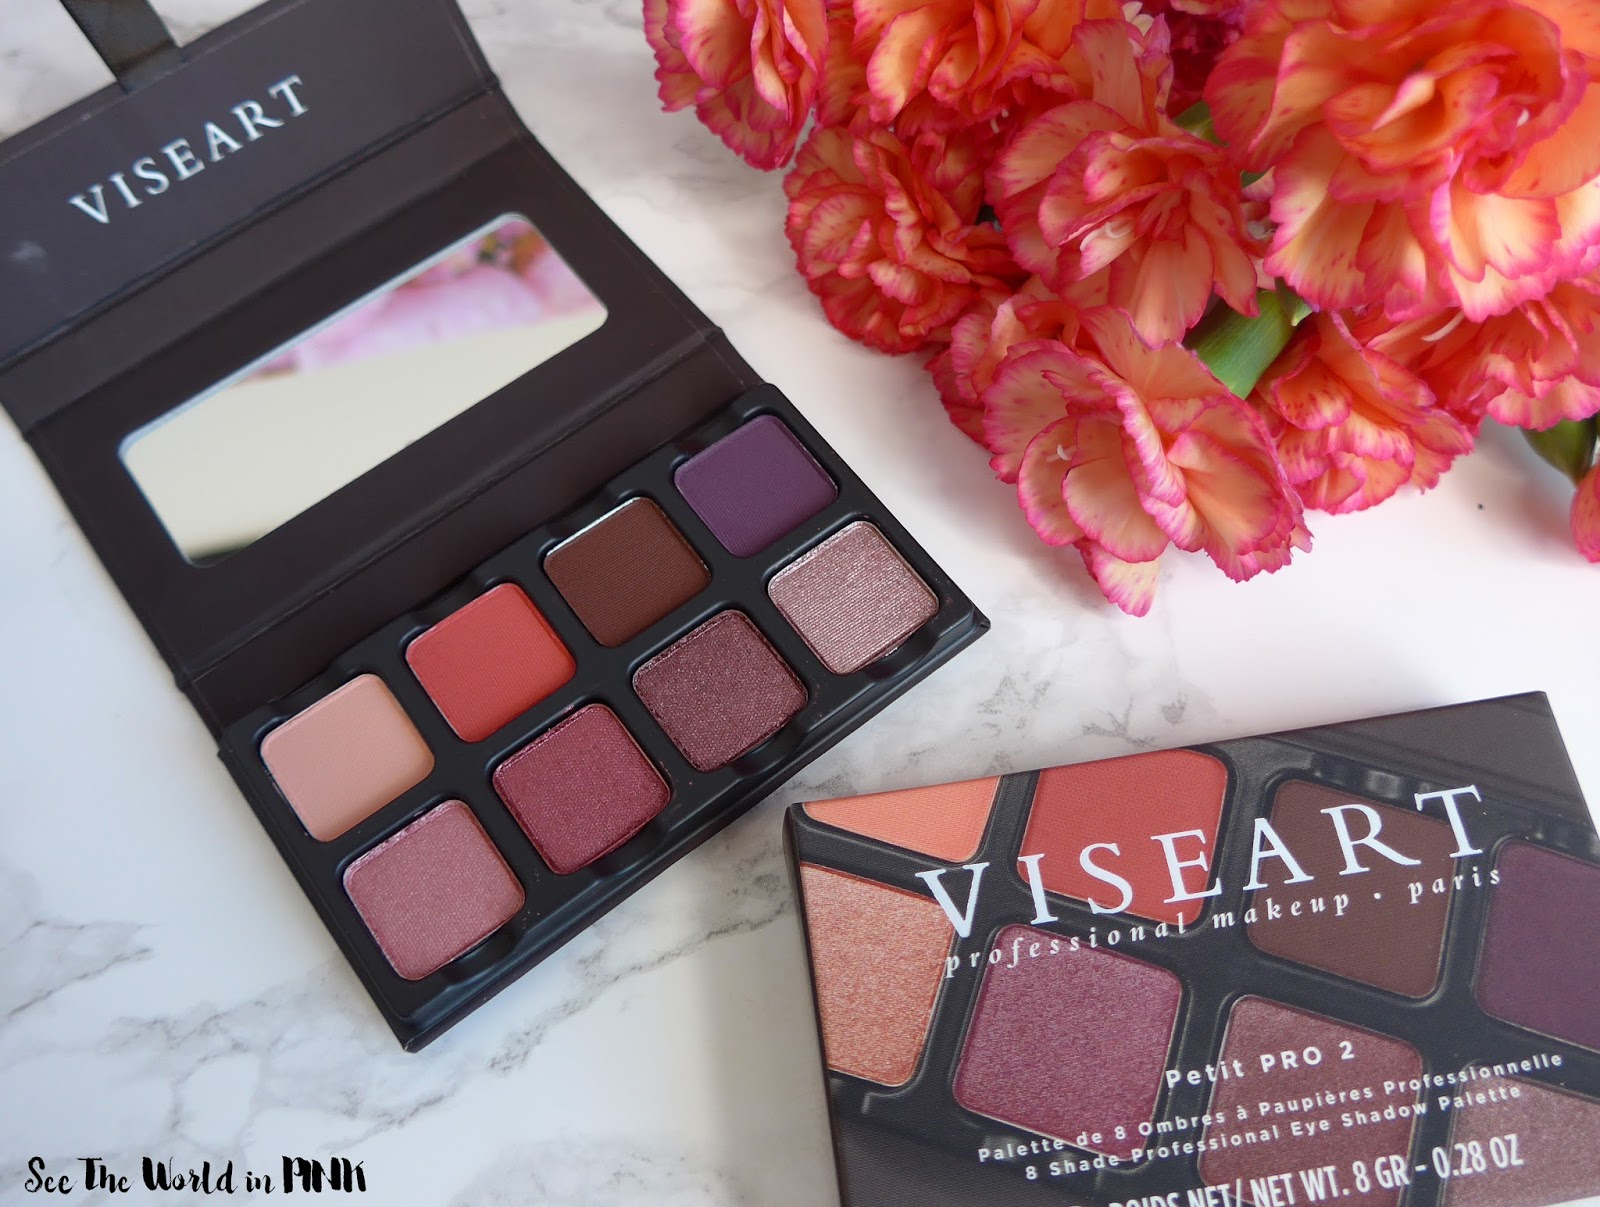 Viseart Makeup Palette Saubhaya 06 Paris Nudes Petit Pro 2 Eyeshadow Review Swatcheakeup Look